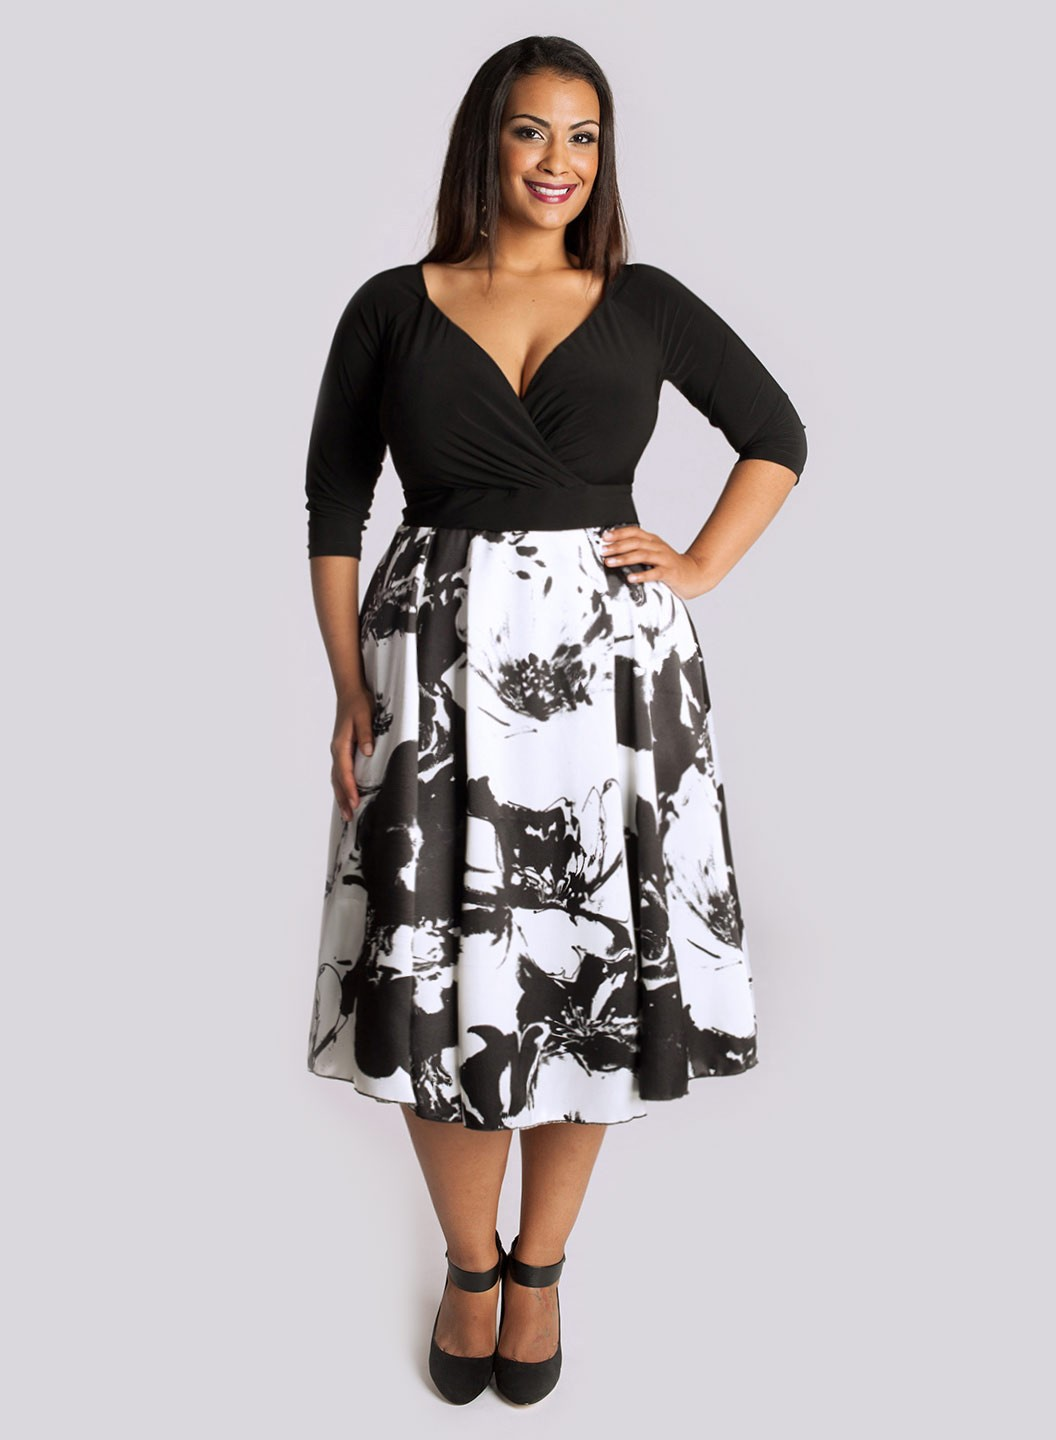 plus-size-summer-clothing-for-women-plus-size-sundresses-for-women-2014-2015-fashion-trends